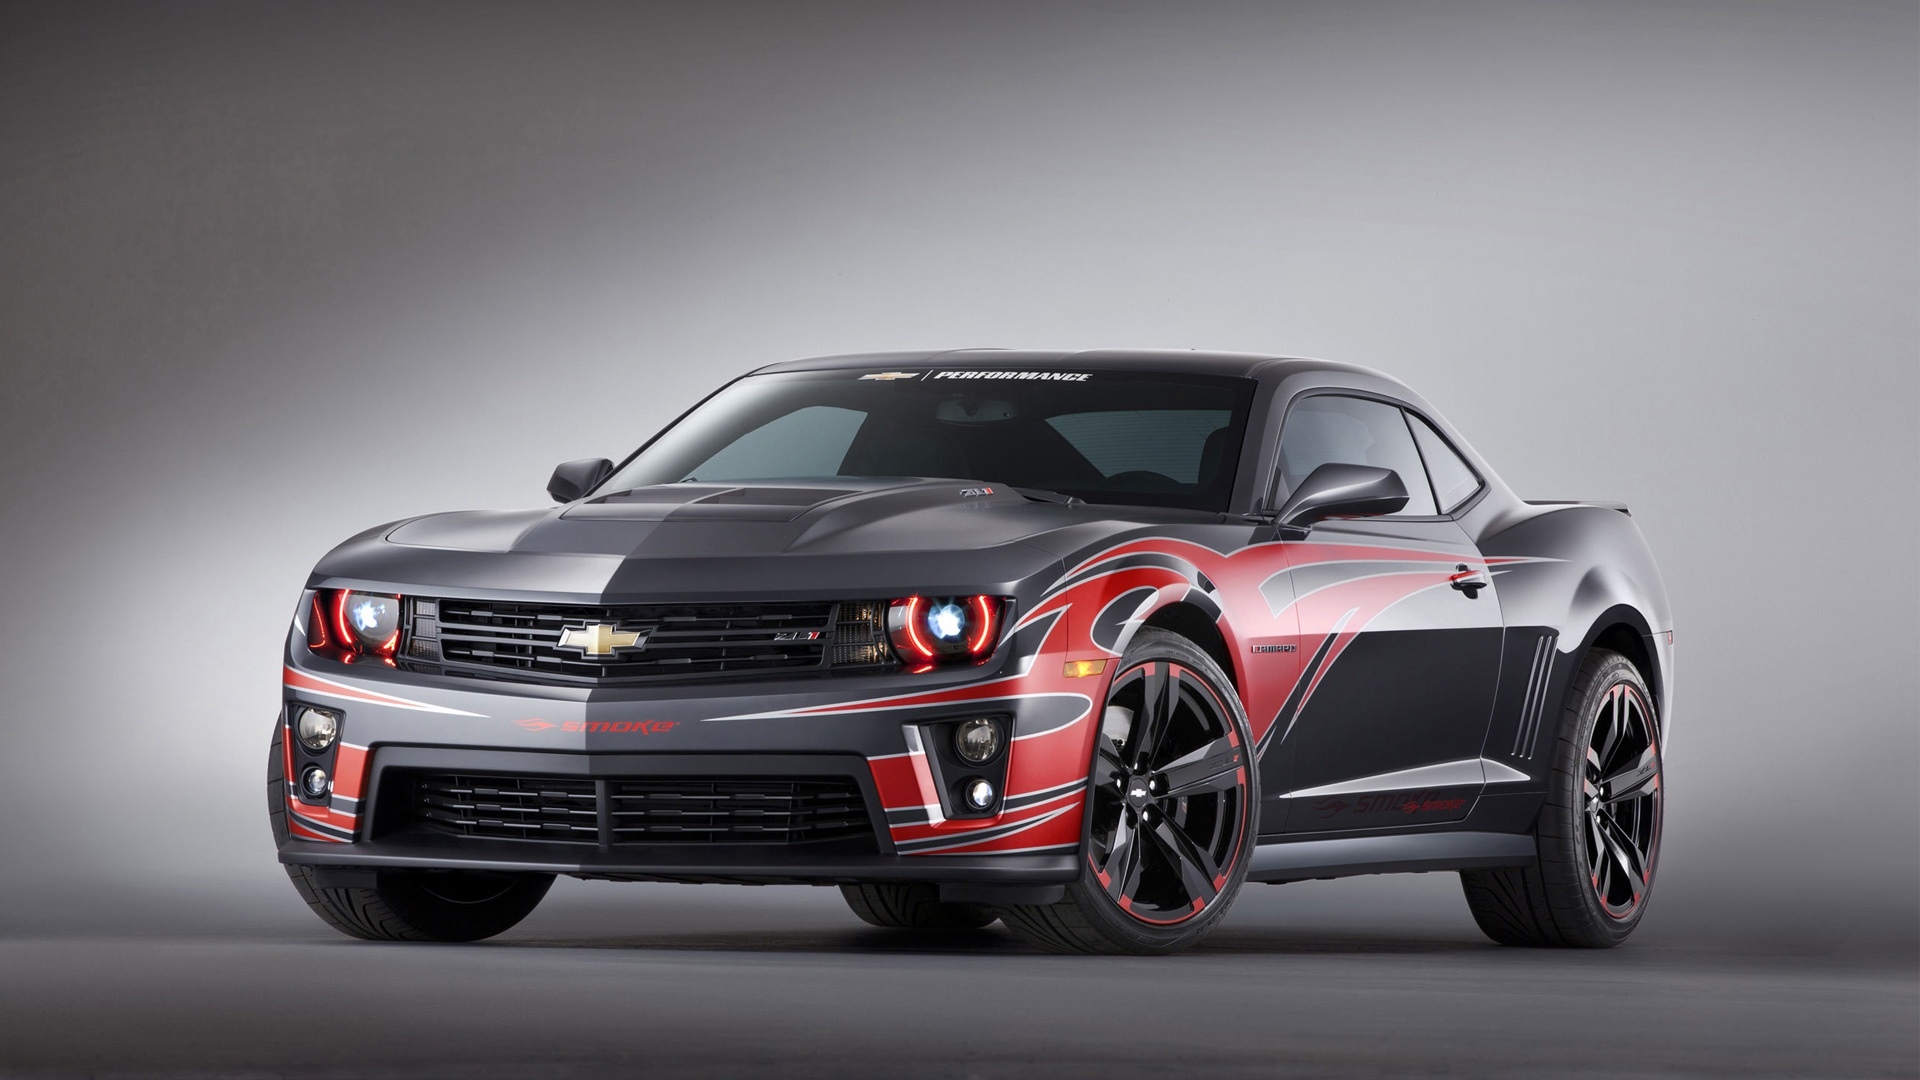 2012 Chevrolet Camaro ZL1 Wallpapers HD Wallpapers 1920x1080